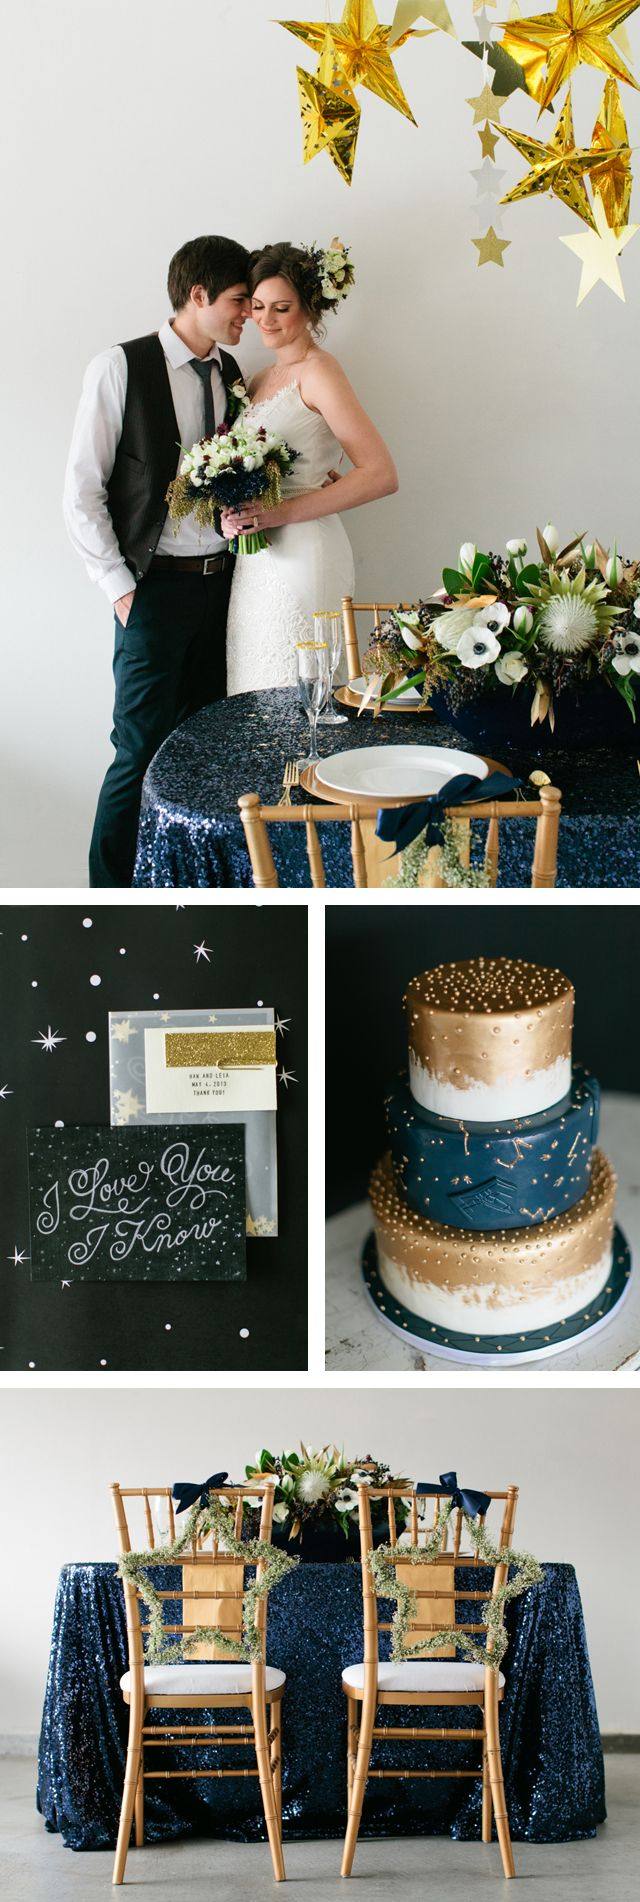 May the 4th be With You! Star Wars Wedding Inspiration by Las Vegas Wedding Photographer – Meg Ruth Photo, Caravan Shoppe, Layers of Lovely, Peridot Sweets